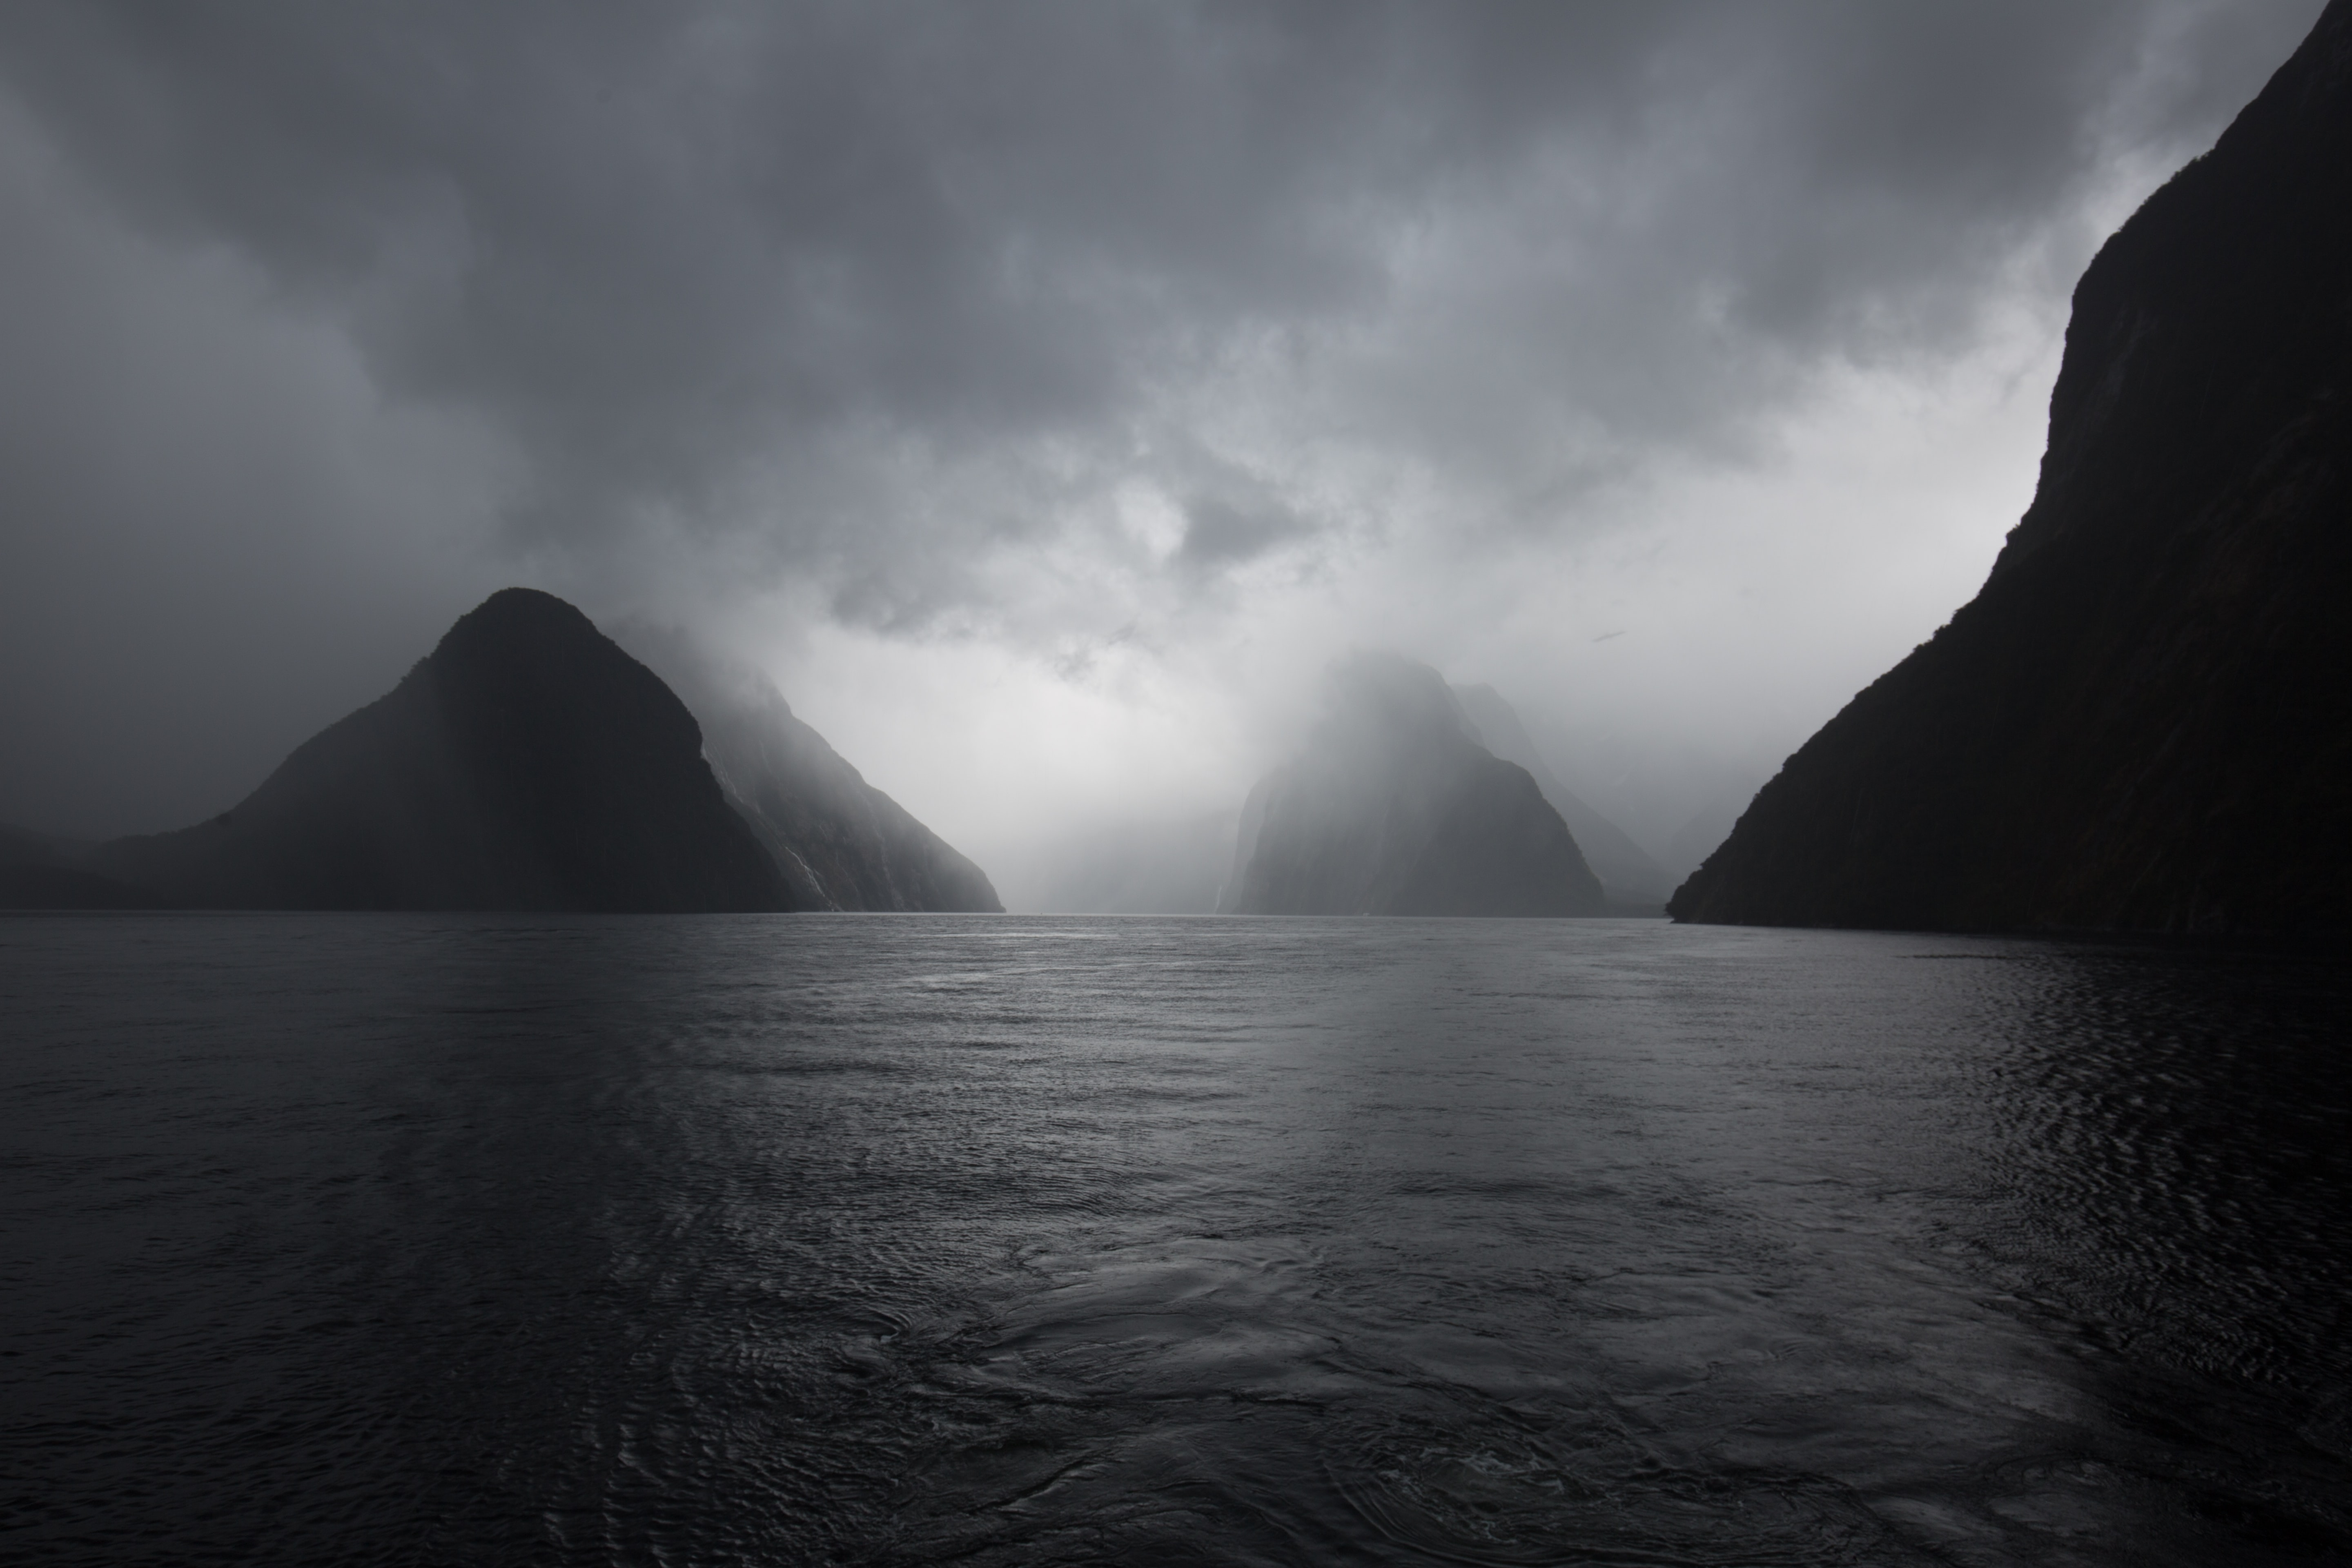 landscape photography of body of water under gray sky